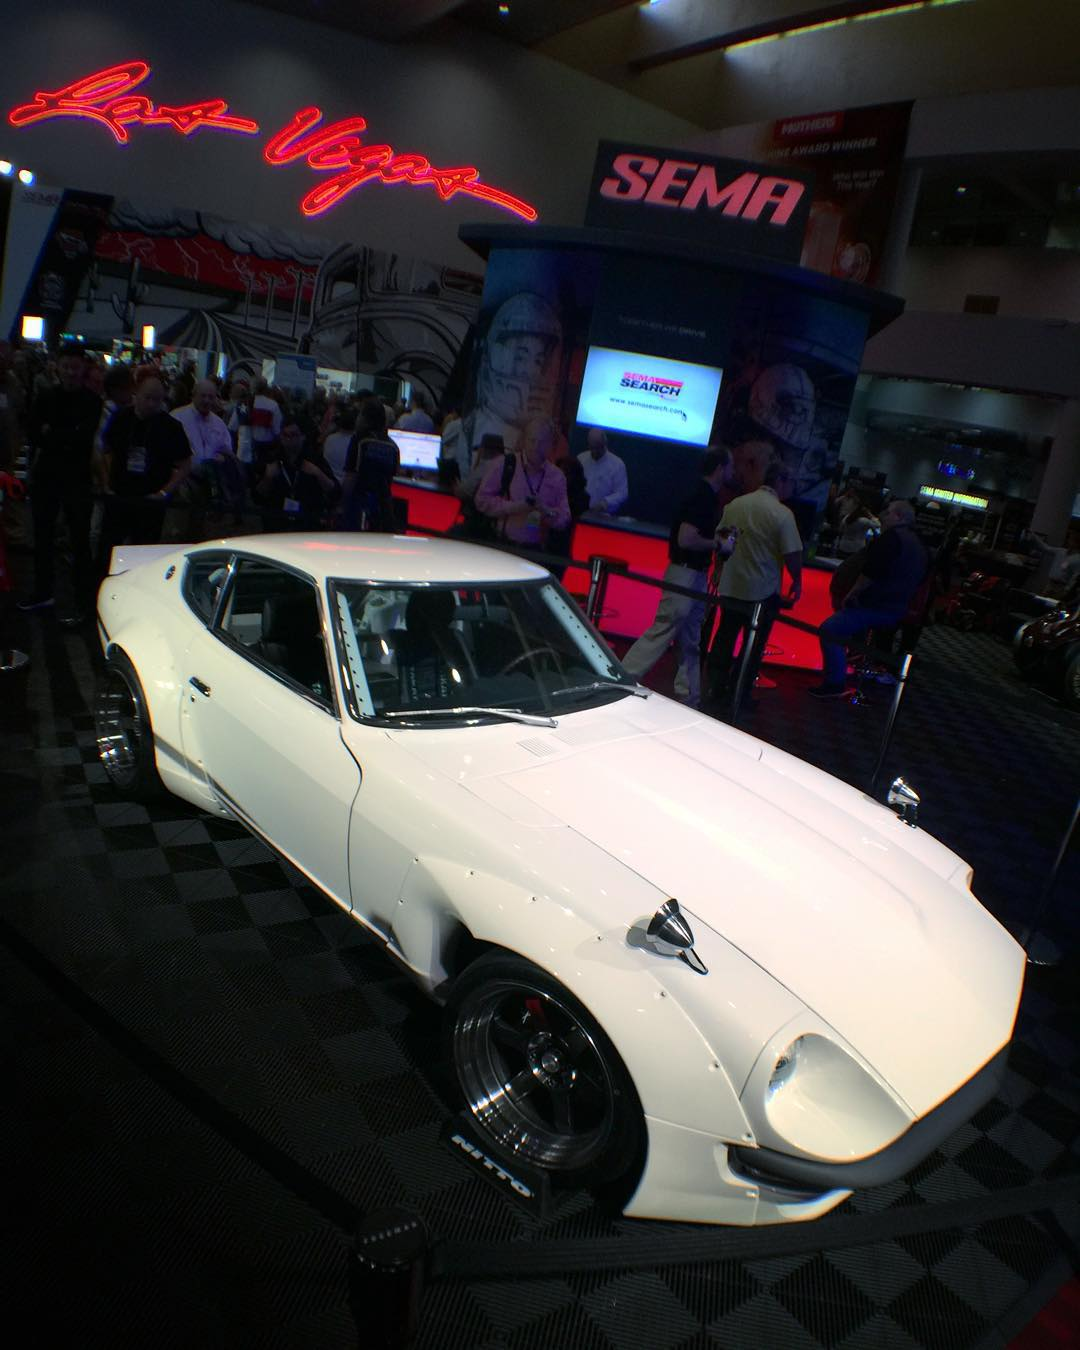 Day 2 of SEMA and we still haven't seen everything yet. #HNGNdoesSEMA